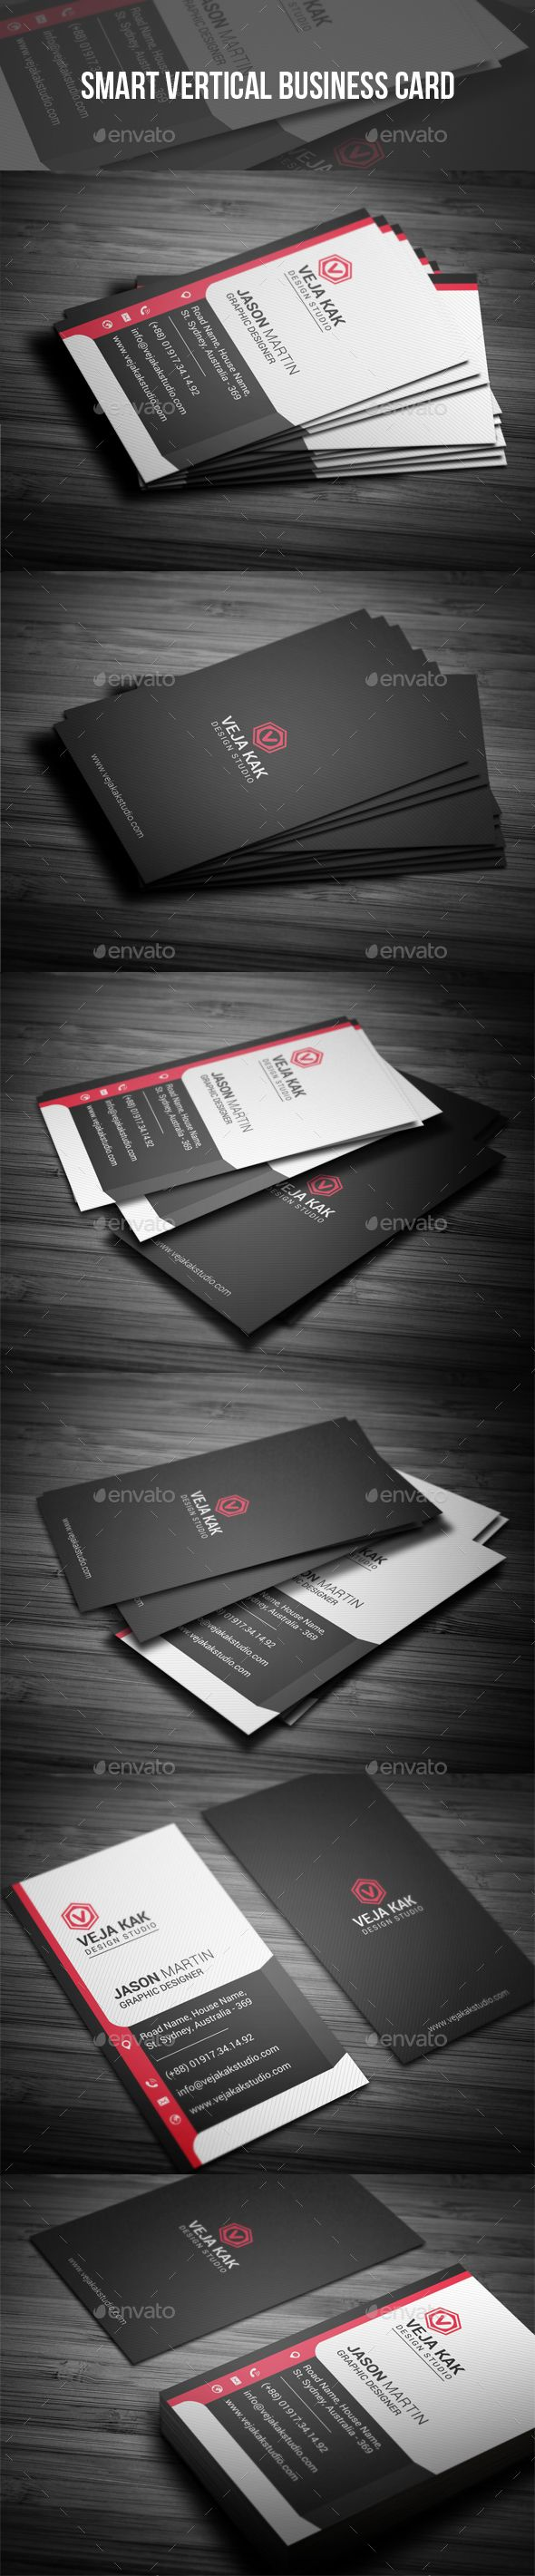 Smart Vertical Business Card - #Creative #Business #Cards Download here: https://graphicriver.net/item/smart-vertical-business-card/19322043?ref=alena994